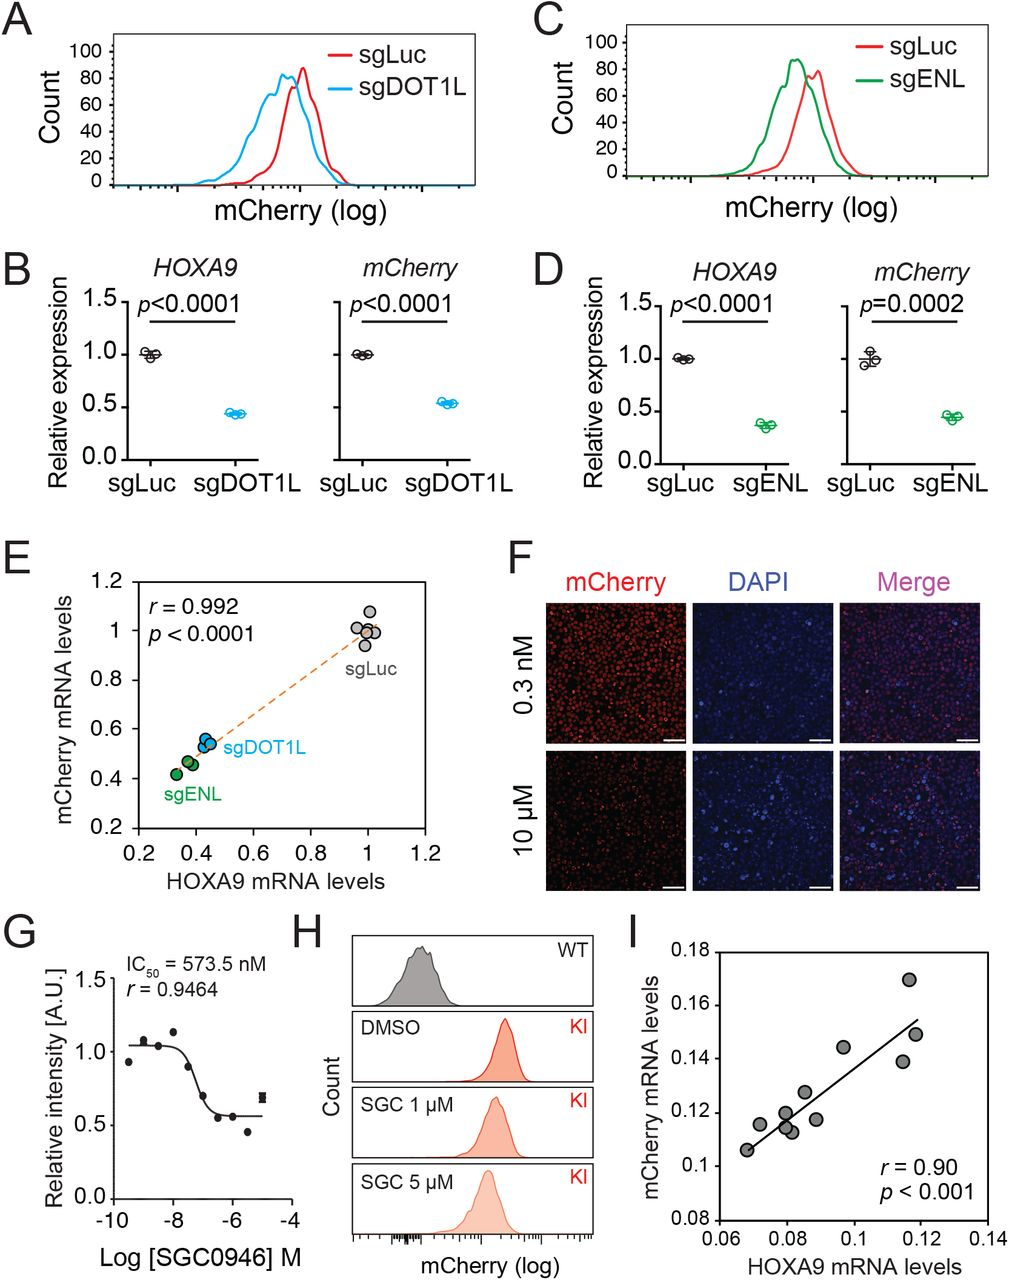 The HOXA9 P2A-mCherry reporter allele recapitulates endogenous transcription of HOXA9 in MLLr SEM cells (A) Flow cytometry analysis of the HOXA9 P2A-mCherry cells targeted with luciferase-sgRNA and DOT1L-sgRNA. (B) Q-PCR analysis of the HOXA9 P2A-mCherry cells targeted with luciferase-sgRNA and DOT1L-sgRNA by using specific primers targeting the mRNA sequences of mCherry and HOXA9 . Three biological replicates were performed. Data shown are means ± SEM from replicate independent experiments. The P -value was calculated by performing a two-tailed t -test. (C) Flow cytometry analysis of the HOXA9 P2A-mCherry cells targeted with luciferase-sgRNA and ENL-sgRNA. (D) Q-PCR analysis of the HOXA9 P2A-mCherry cells targeted with luciferase-sgRNA and ENL-sgRNA by using specific primers targeting the mRNA sequence of mCherry and HOXA9 . Three biological replicates were performed. The P -value was calculated by performing a two-tailed t -test. (E) The correlation of transcription reduction in mCherry and HOXA9 in response to CRISPR–mediated targeting was calculated by Pearson's correlation test. (F) Fluorescence imaging was performed on the HOXA9 P2A-mCherry cells treated with various dosages of DOT1L inhibitor SGC0946 for six days. Representative images were shown for comparison between 0.3 nM and 10 μM dosages. For each dosage treatment, four replicates were conducted (scale bar 50 μm). (G) Fluorescence curve was generated according to mCherry intensity in response to dosage dependent treatment of drug for six days. About 20,000 cells were split in each of the 384-well at the starting time point. (H) Flow cytometry analysis of the HOXA9 P2A-mCherry cells treated with DMSO and various dosages of the DOT1L inhibitor SGC0946. (I) Q-PCR analysis of the HOXA9 P2A-mCherry cells with or without the six-day treatment of the DOT1L inhibitor SGC0946 by using specific primers targeting the mRNA sequences of mCherry and HOXA9 . The correlation of transcription reduction in mCherry and HOXA9 in response to inhibitor–mediated transcription repression was calculated by performing Pearson's correlation test.